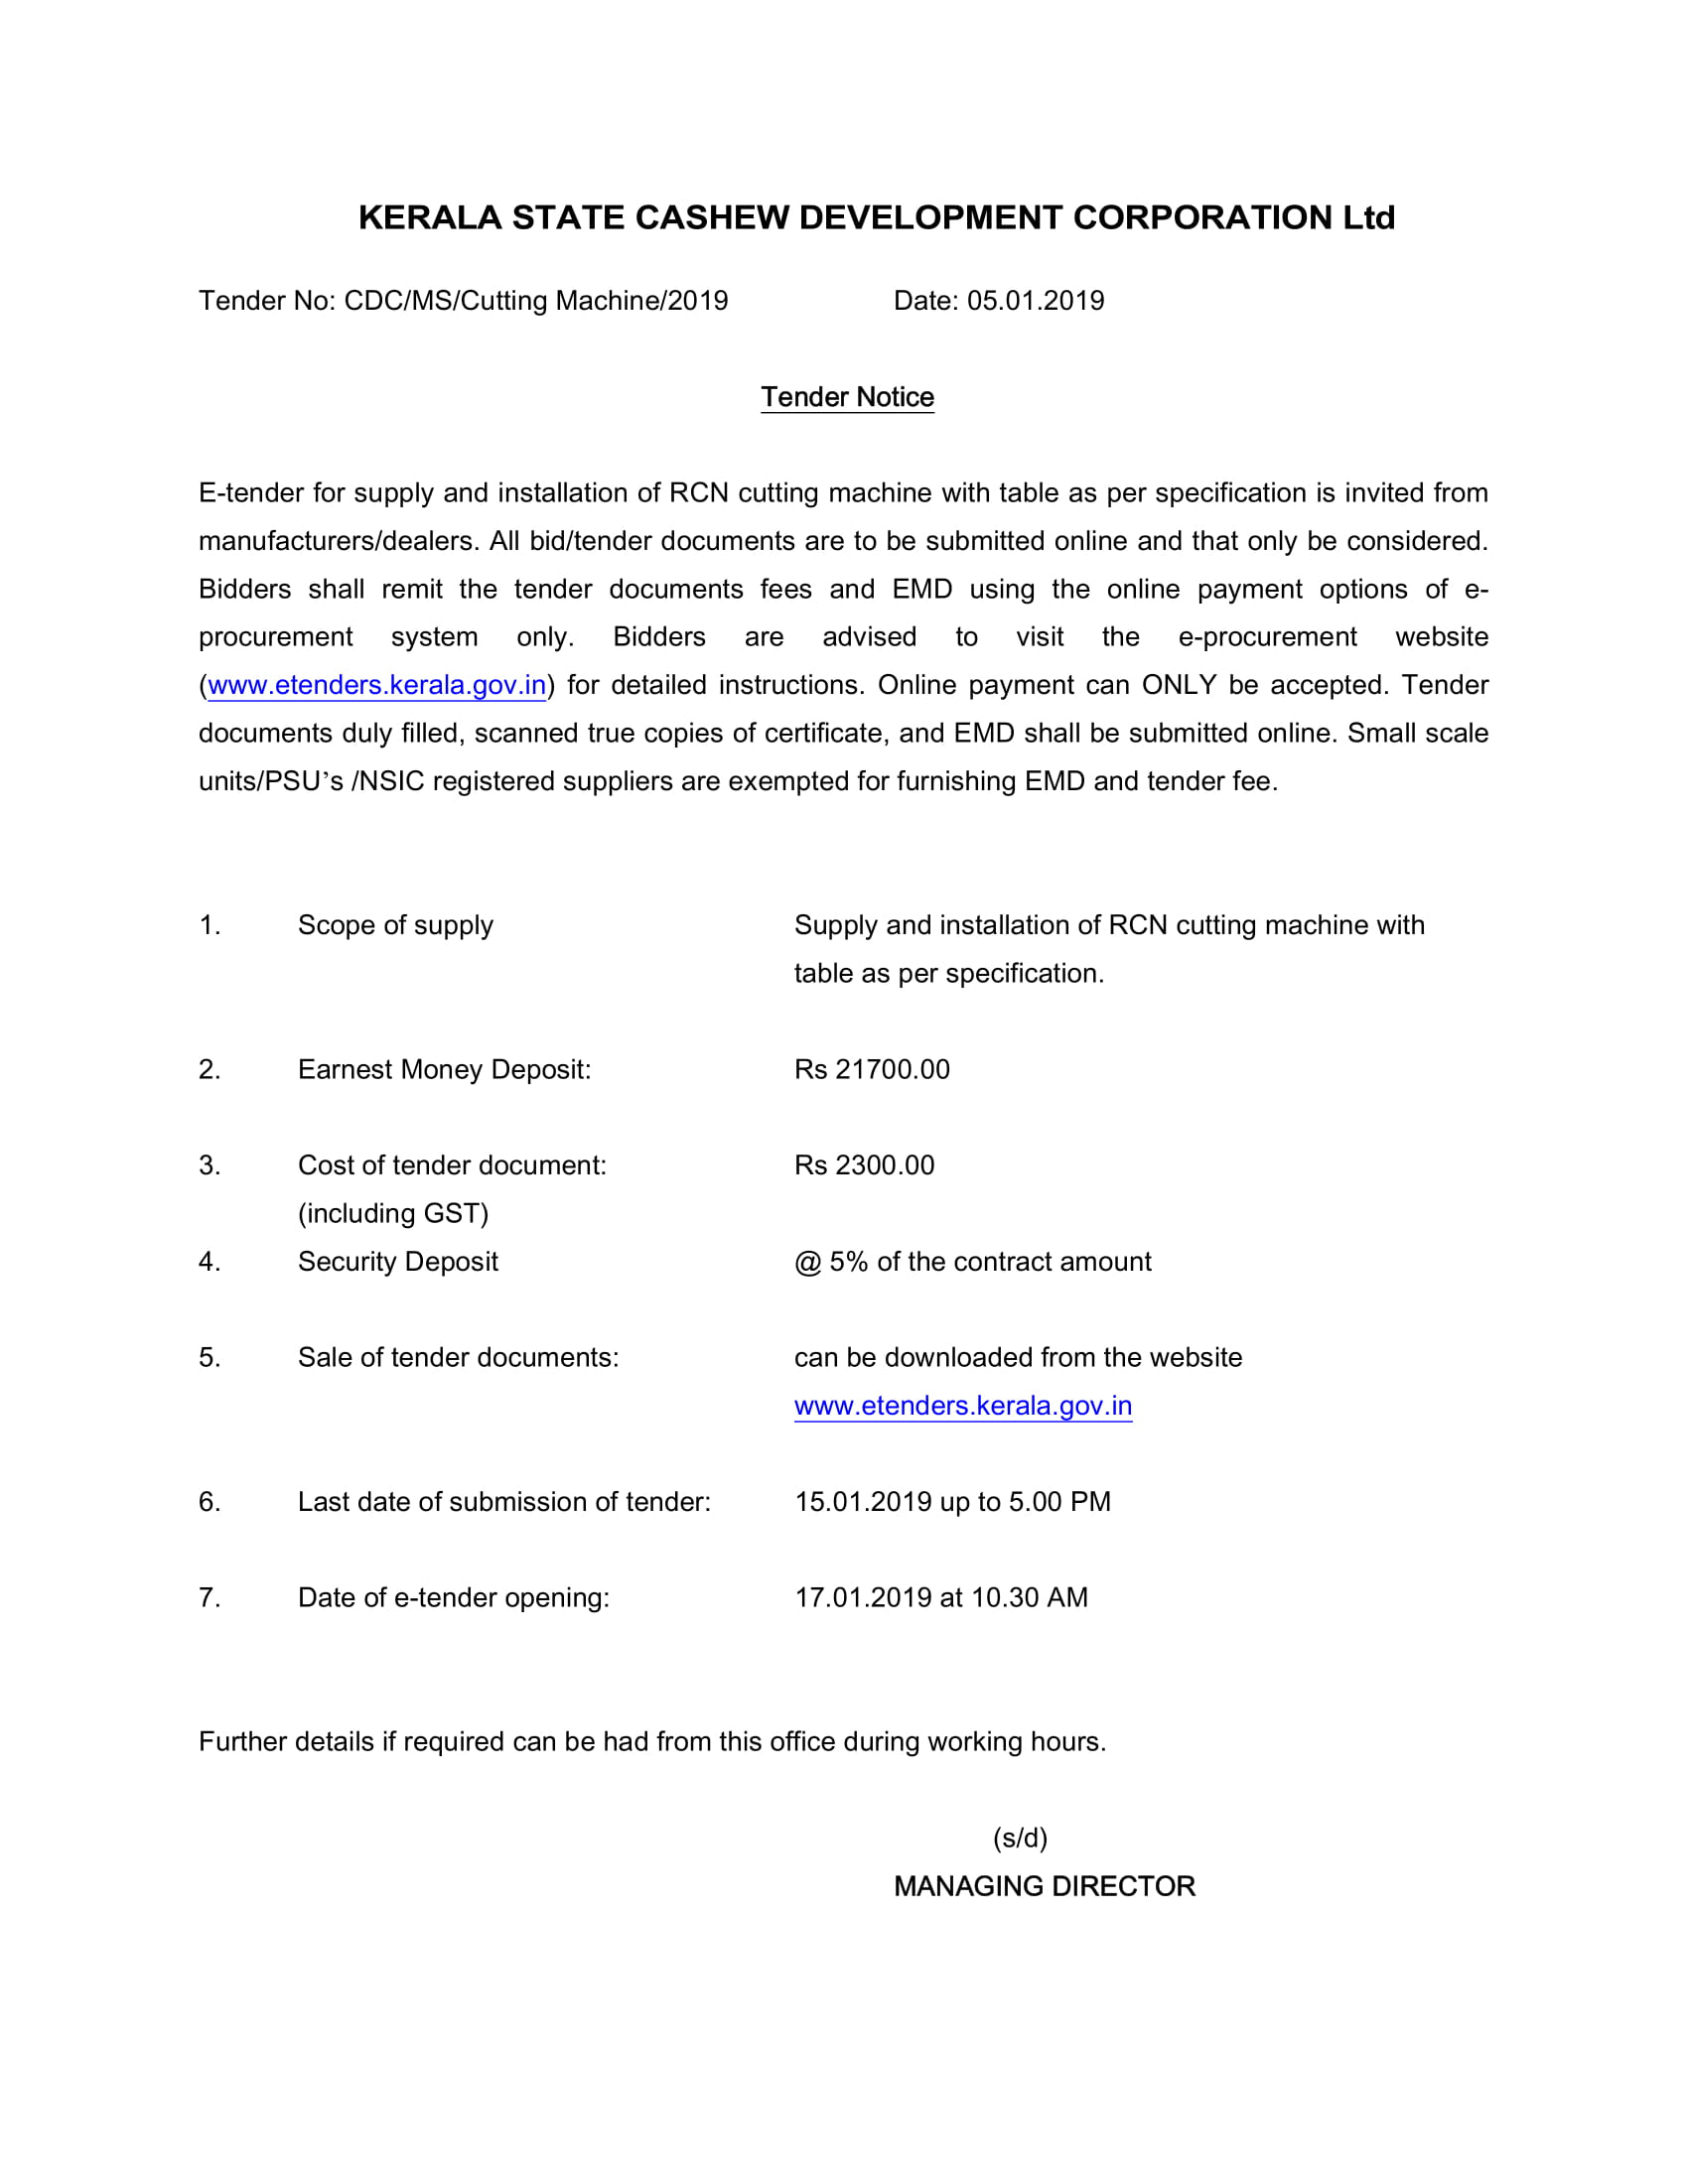 E tender for purchase of cutting machine - Kerala State